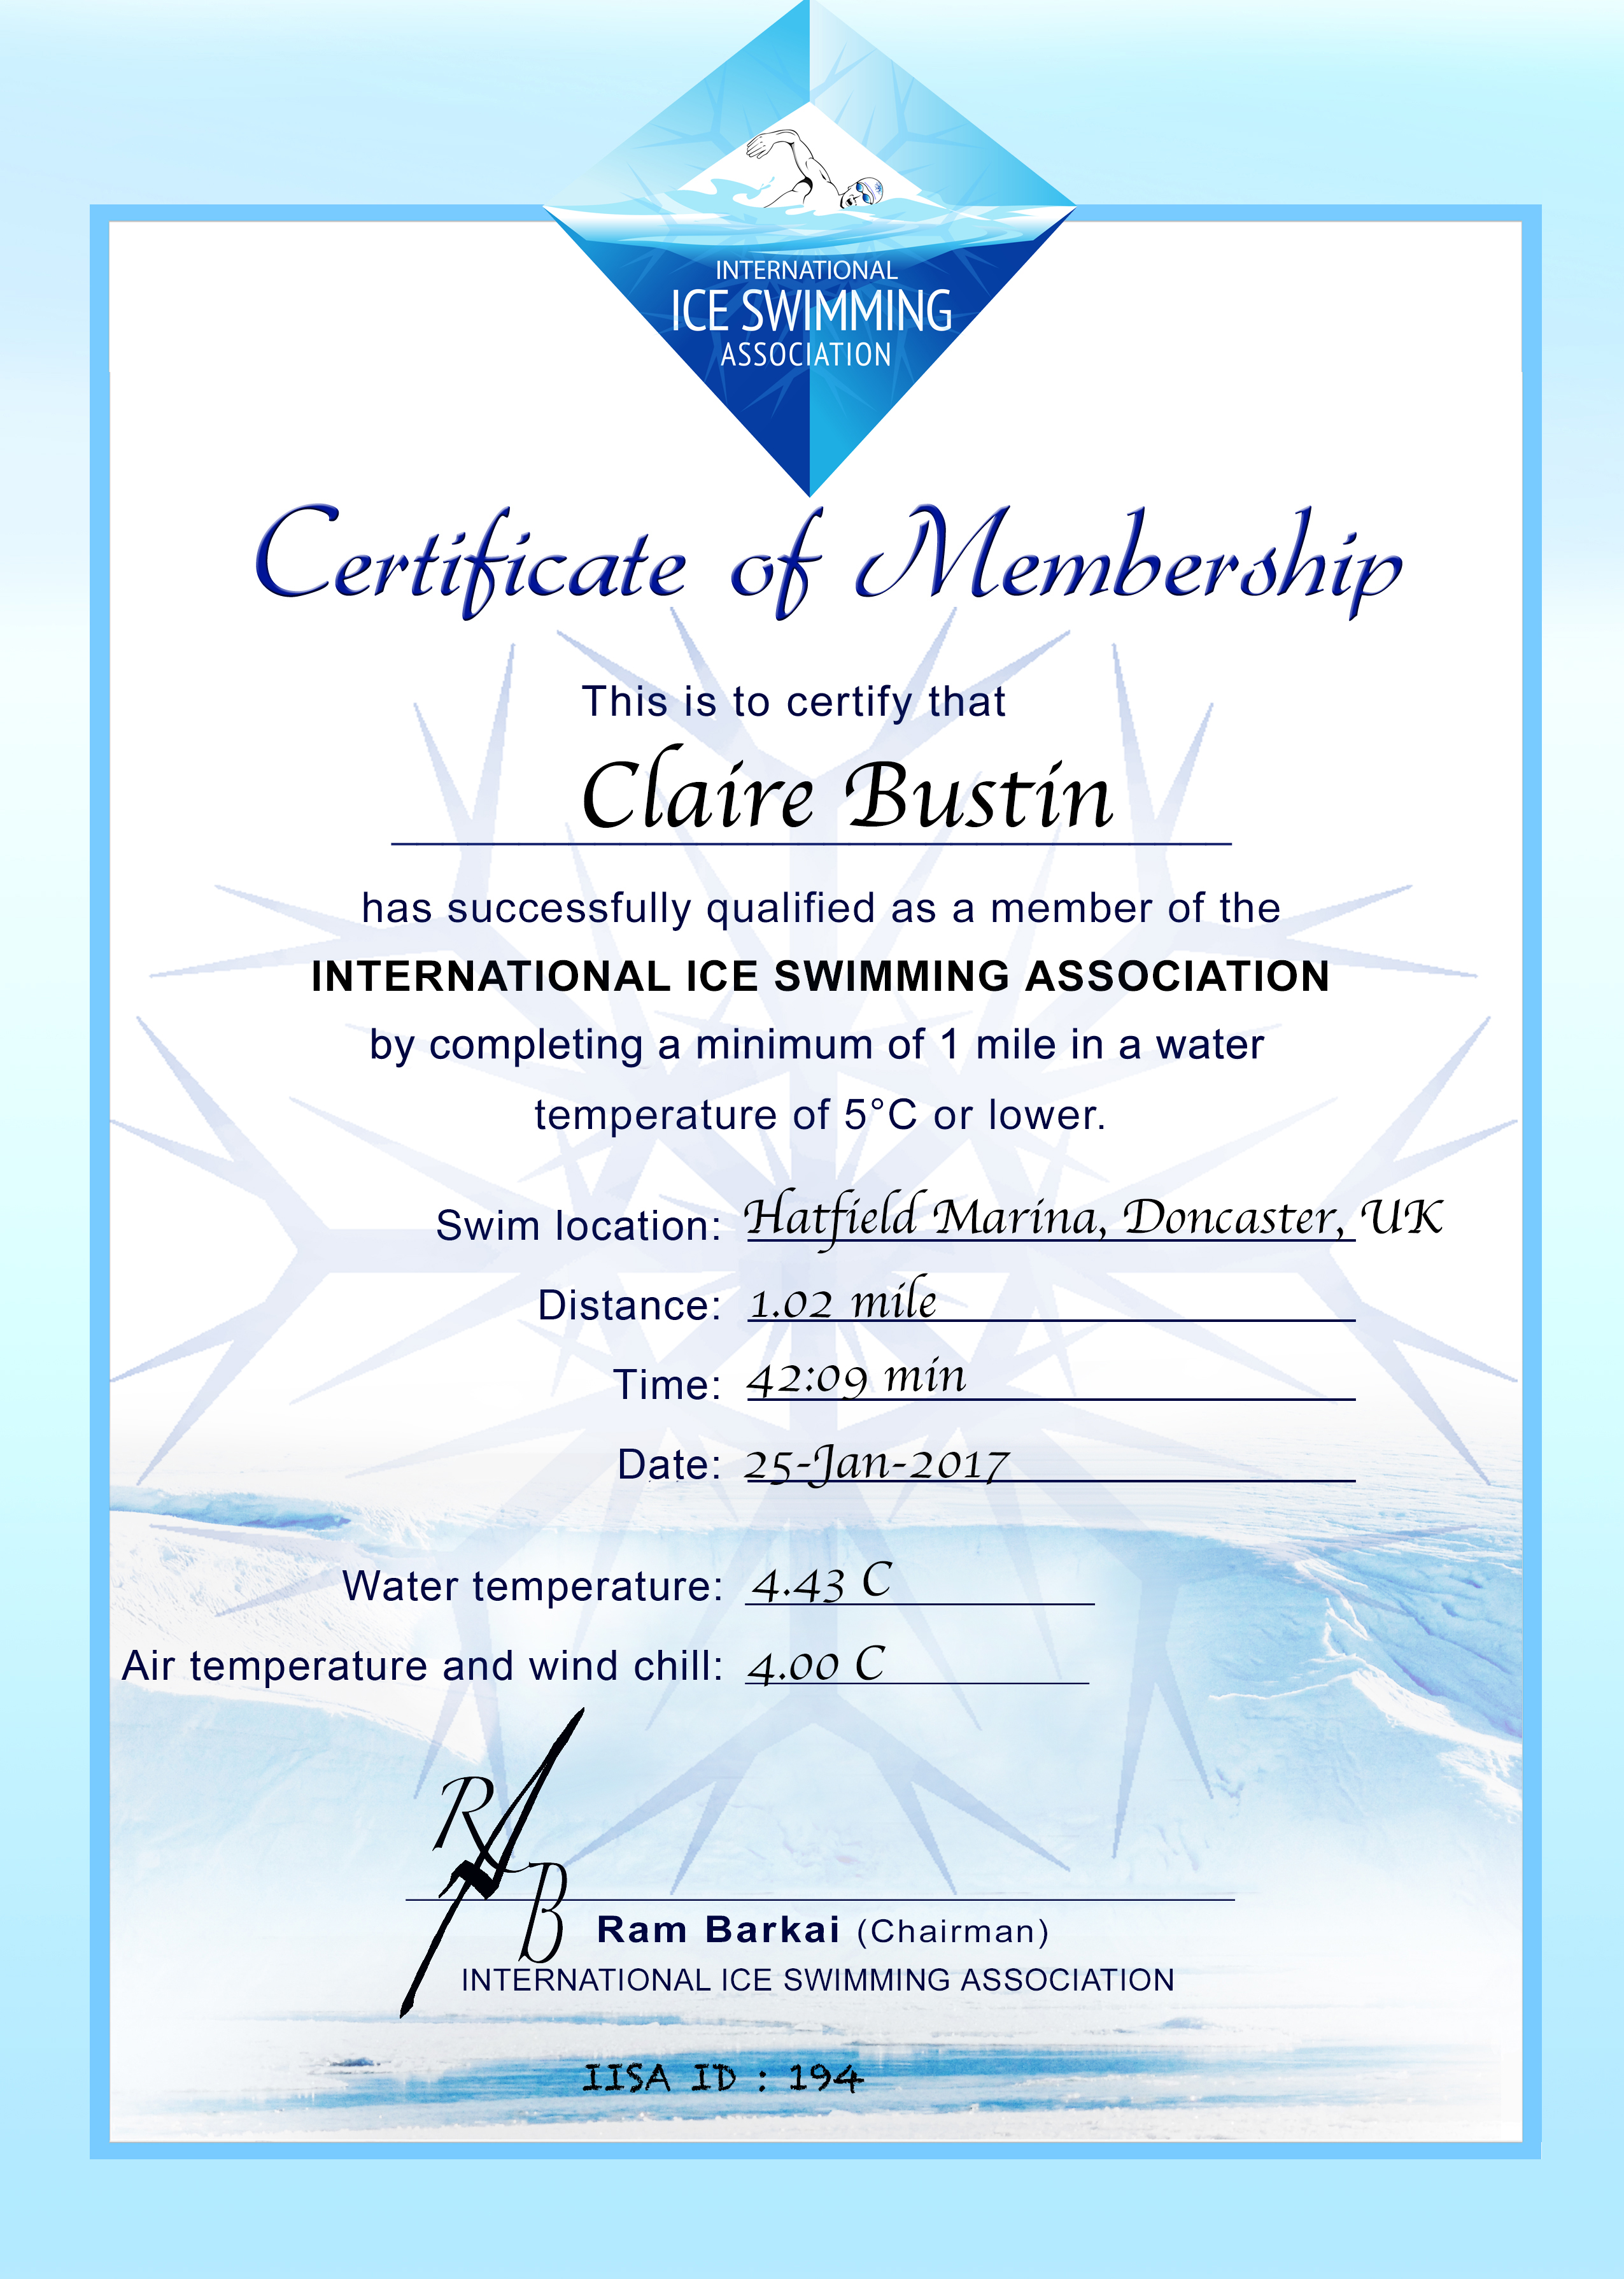 Ice Mile Certificate - Claire Bustin